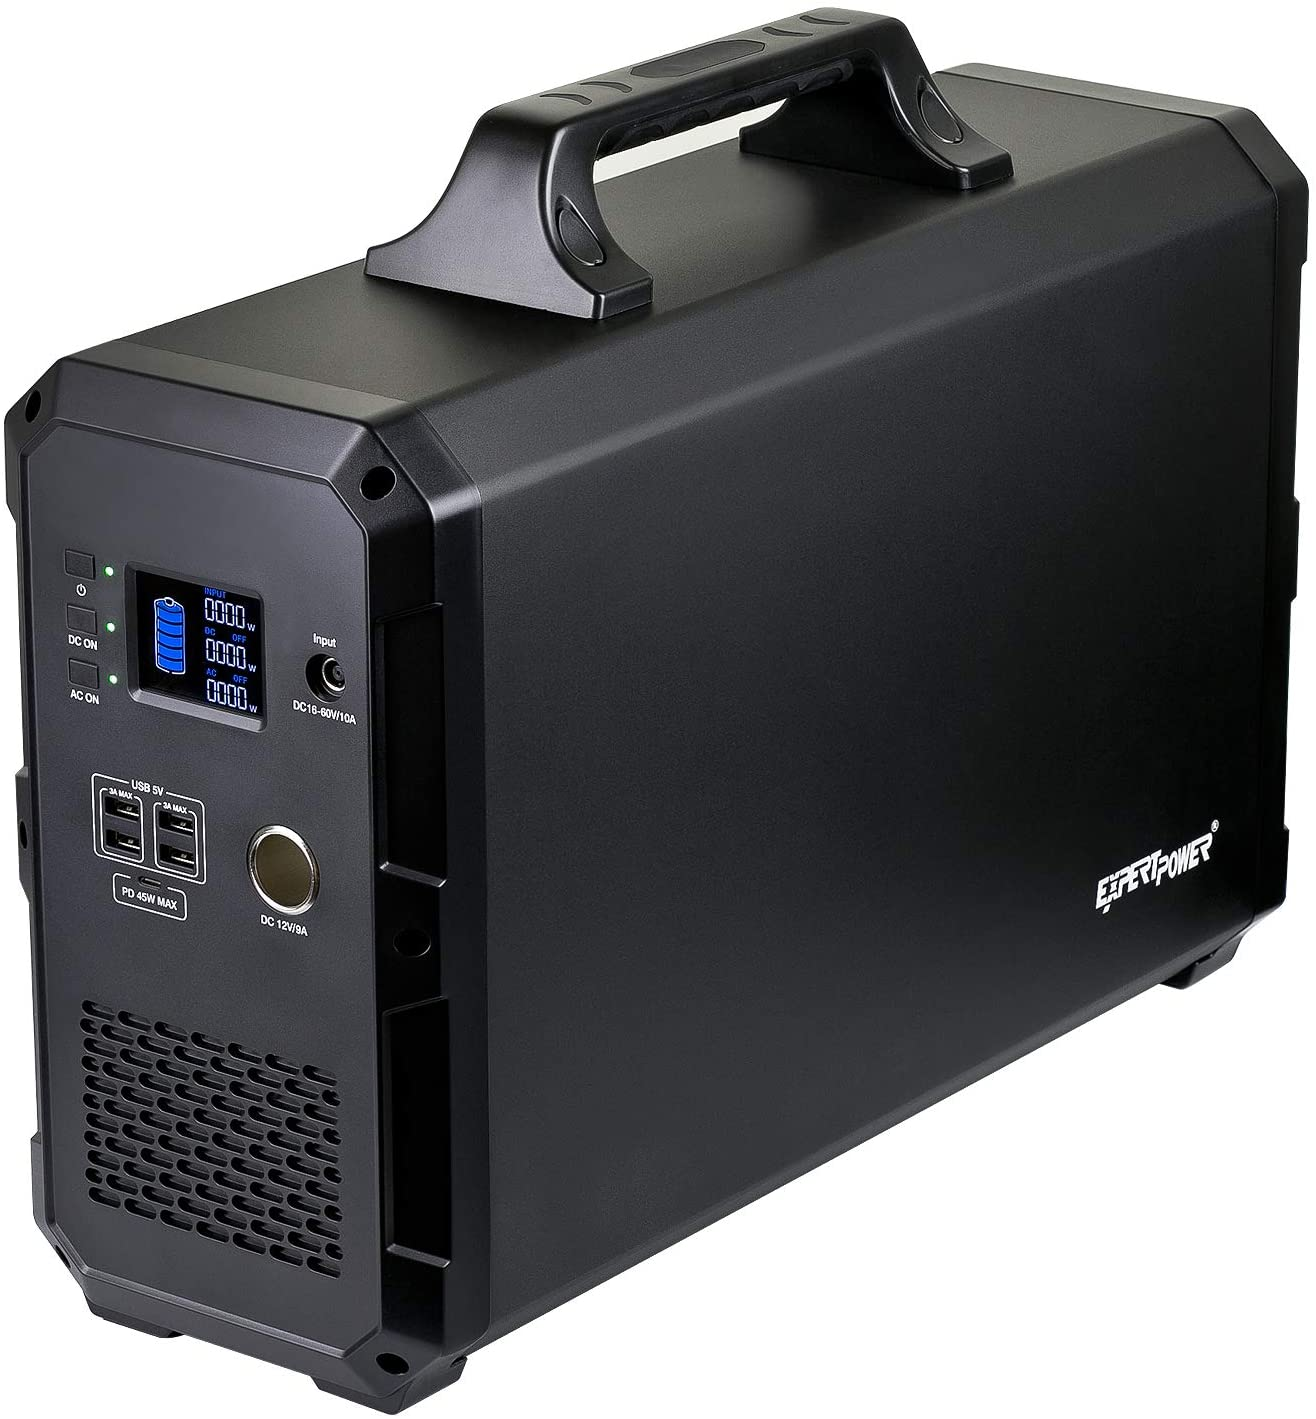 ExpertPower 2400Wh Portable Power Station